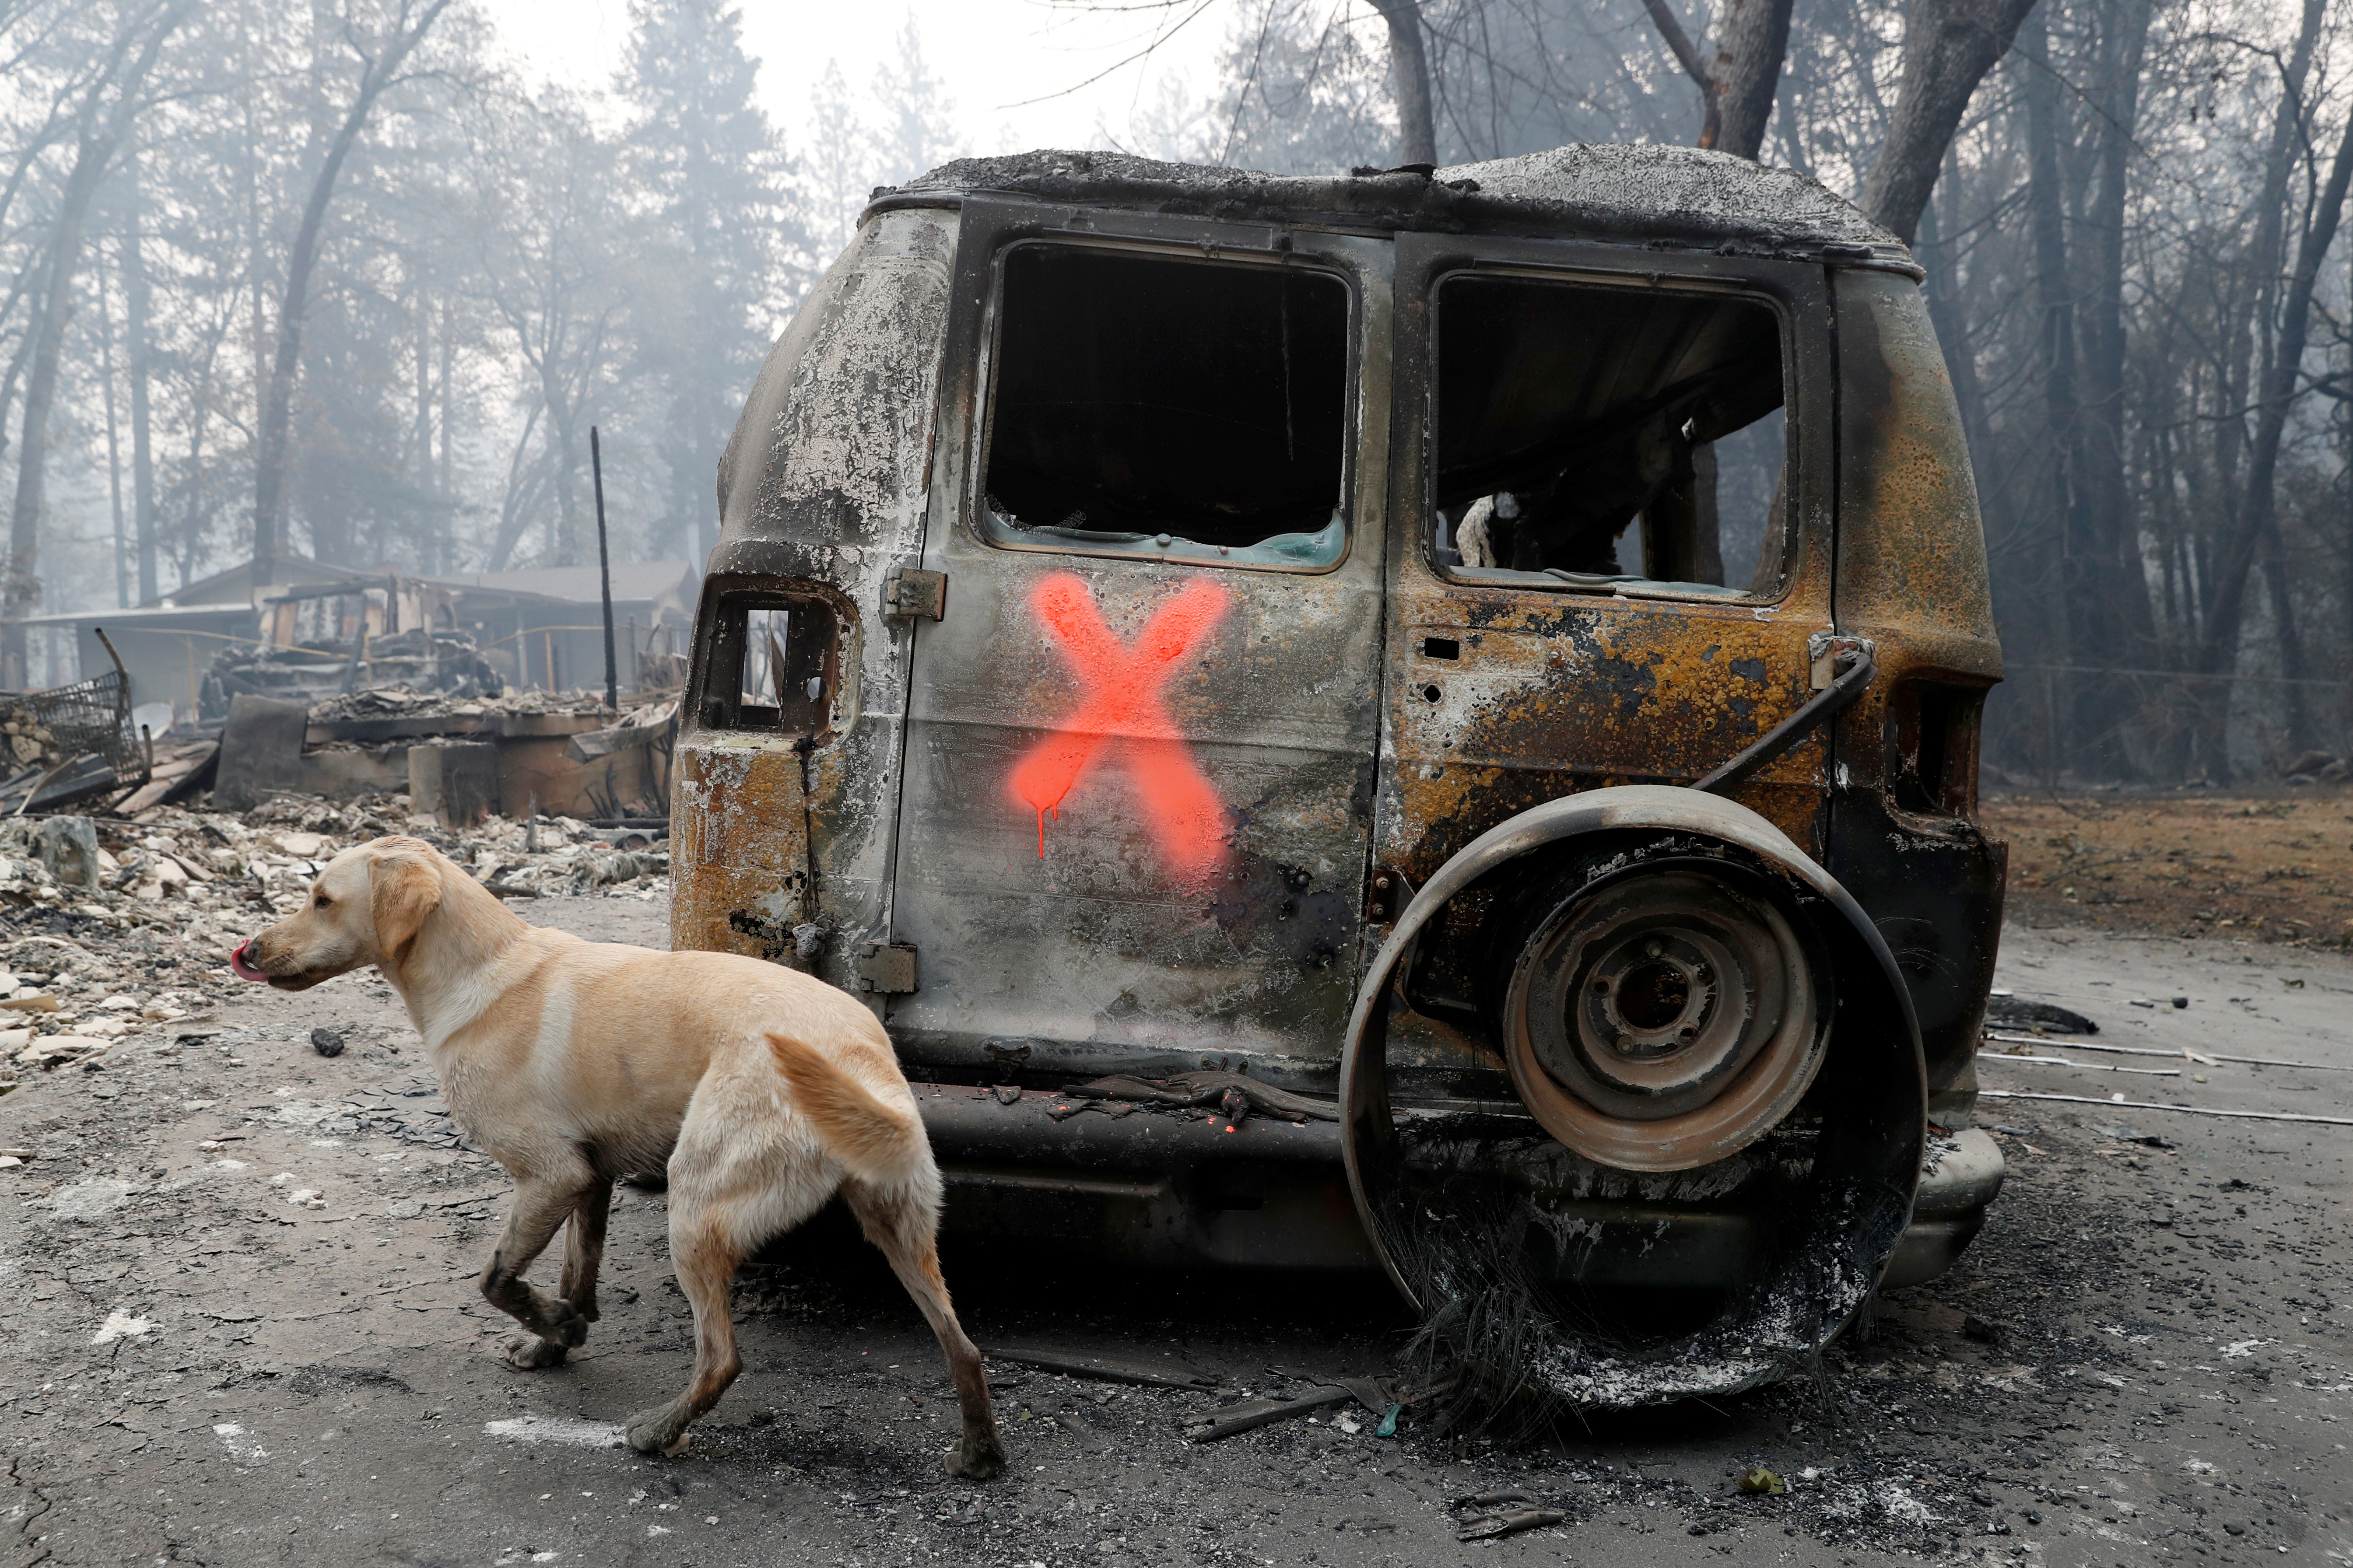 A cadaver dog named Echo searches for human remains near a van destroyed by the Camp Fire in Paradise, California, U.S., November 14, 2018. REUTERS/Terray Sylvester